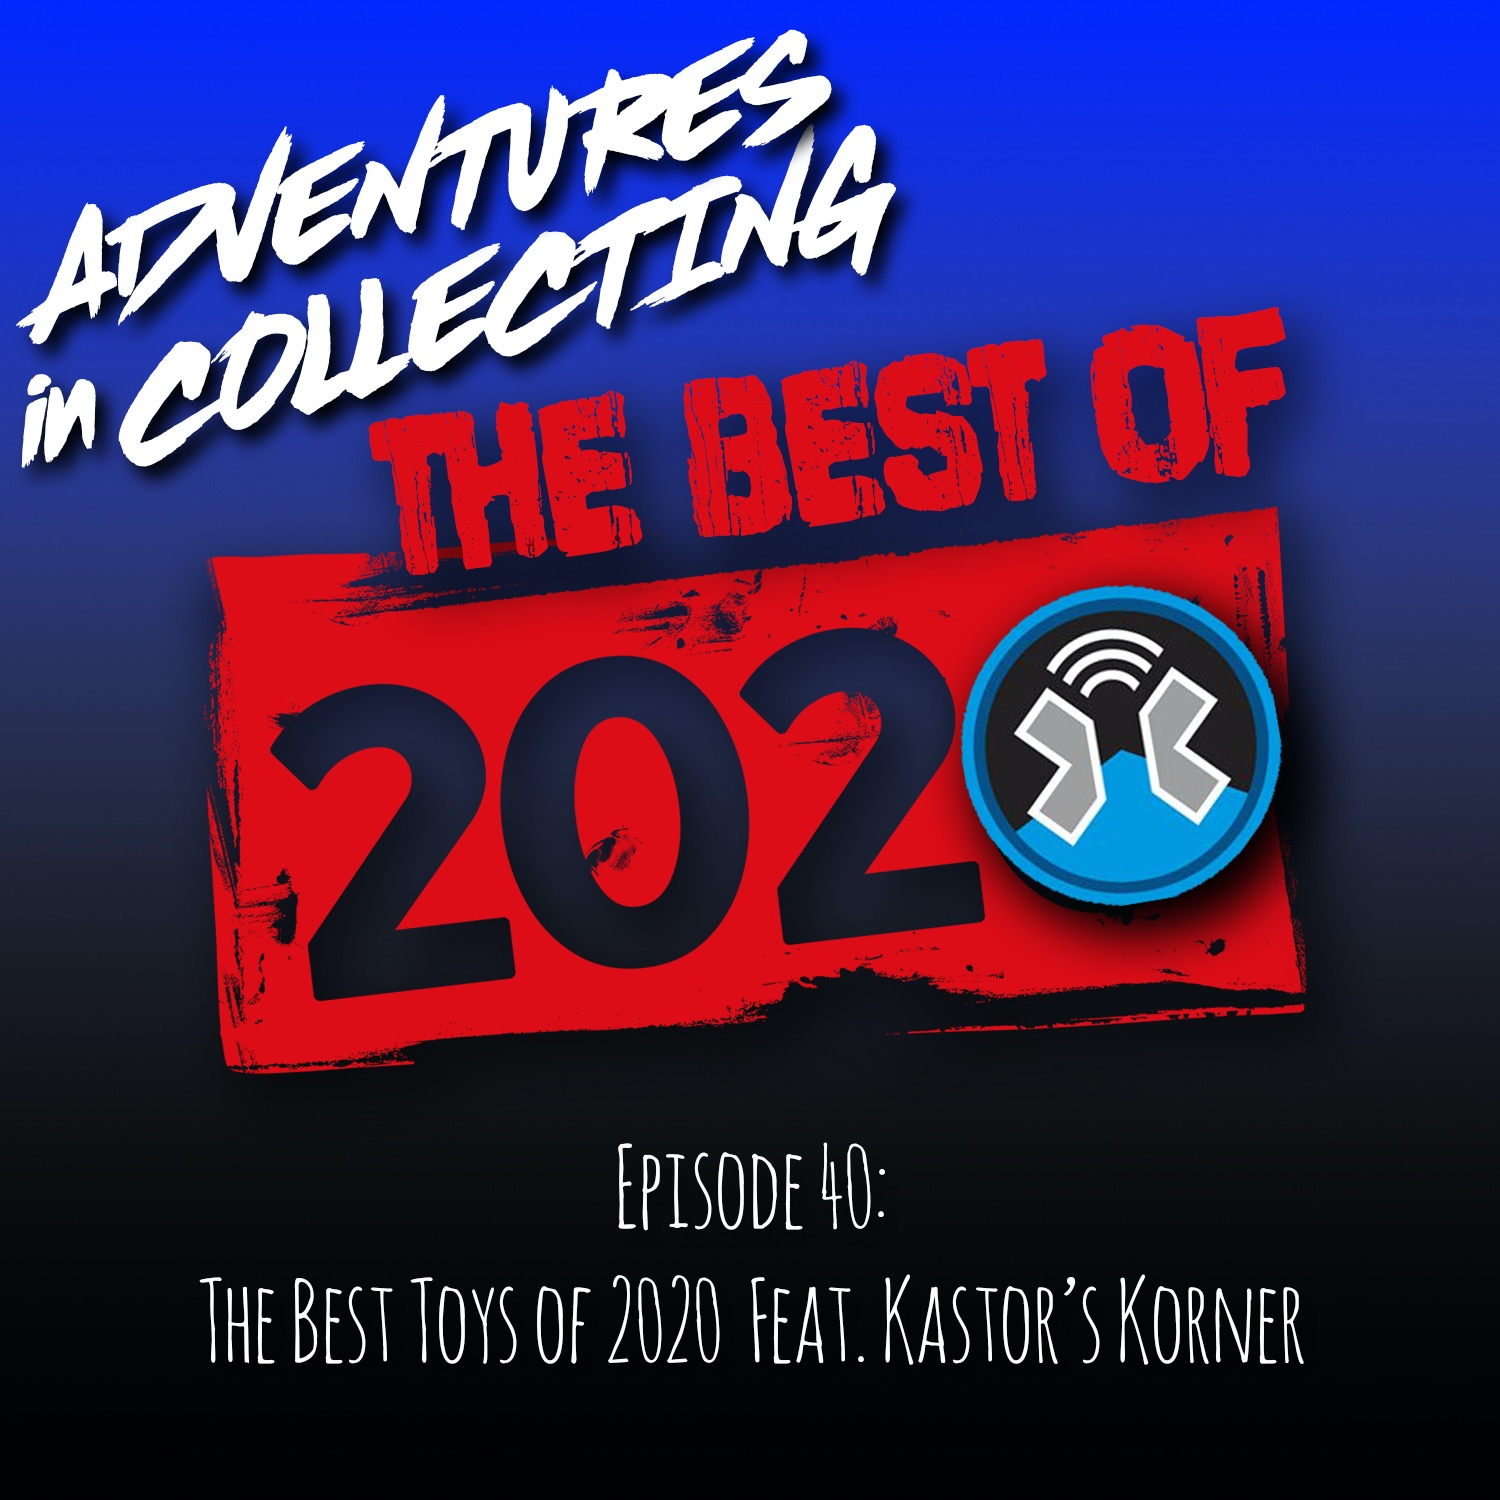 The Best Toys of 2020 Featuring Kastor's Korner – Adventures in Collecting